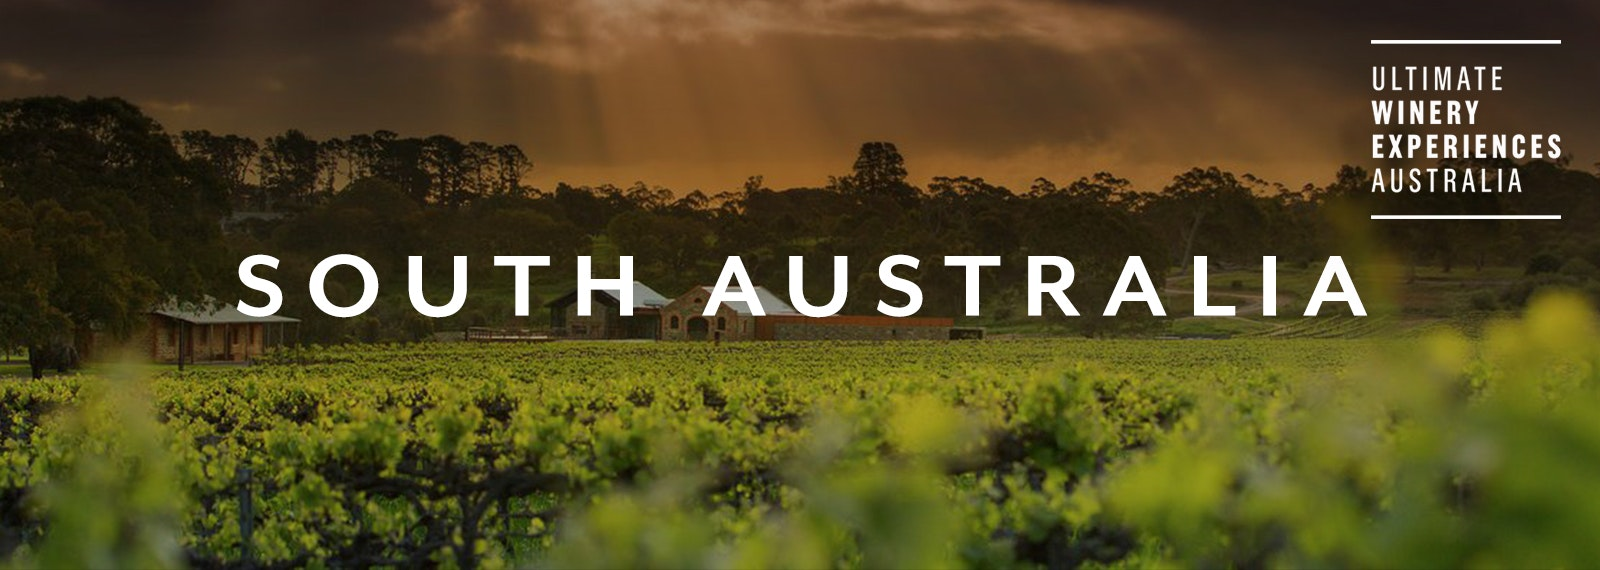 Ultimate Winery Experiences Australia - South Australia